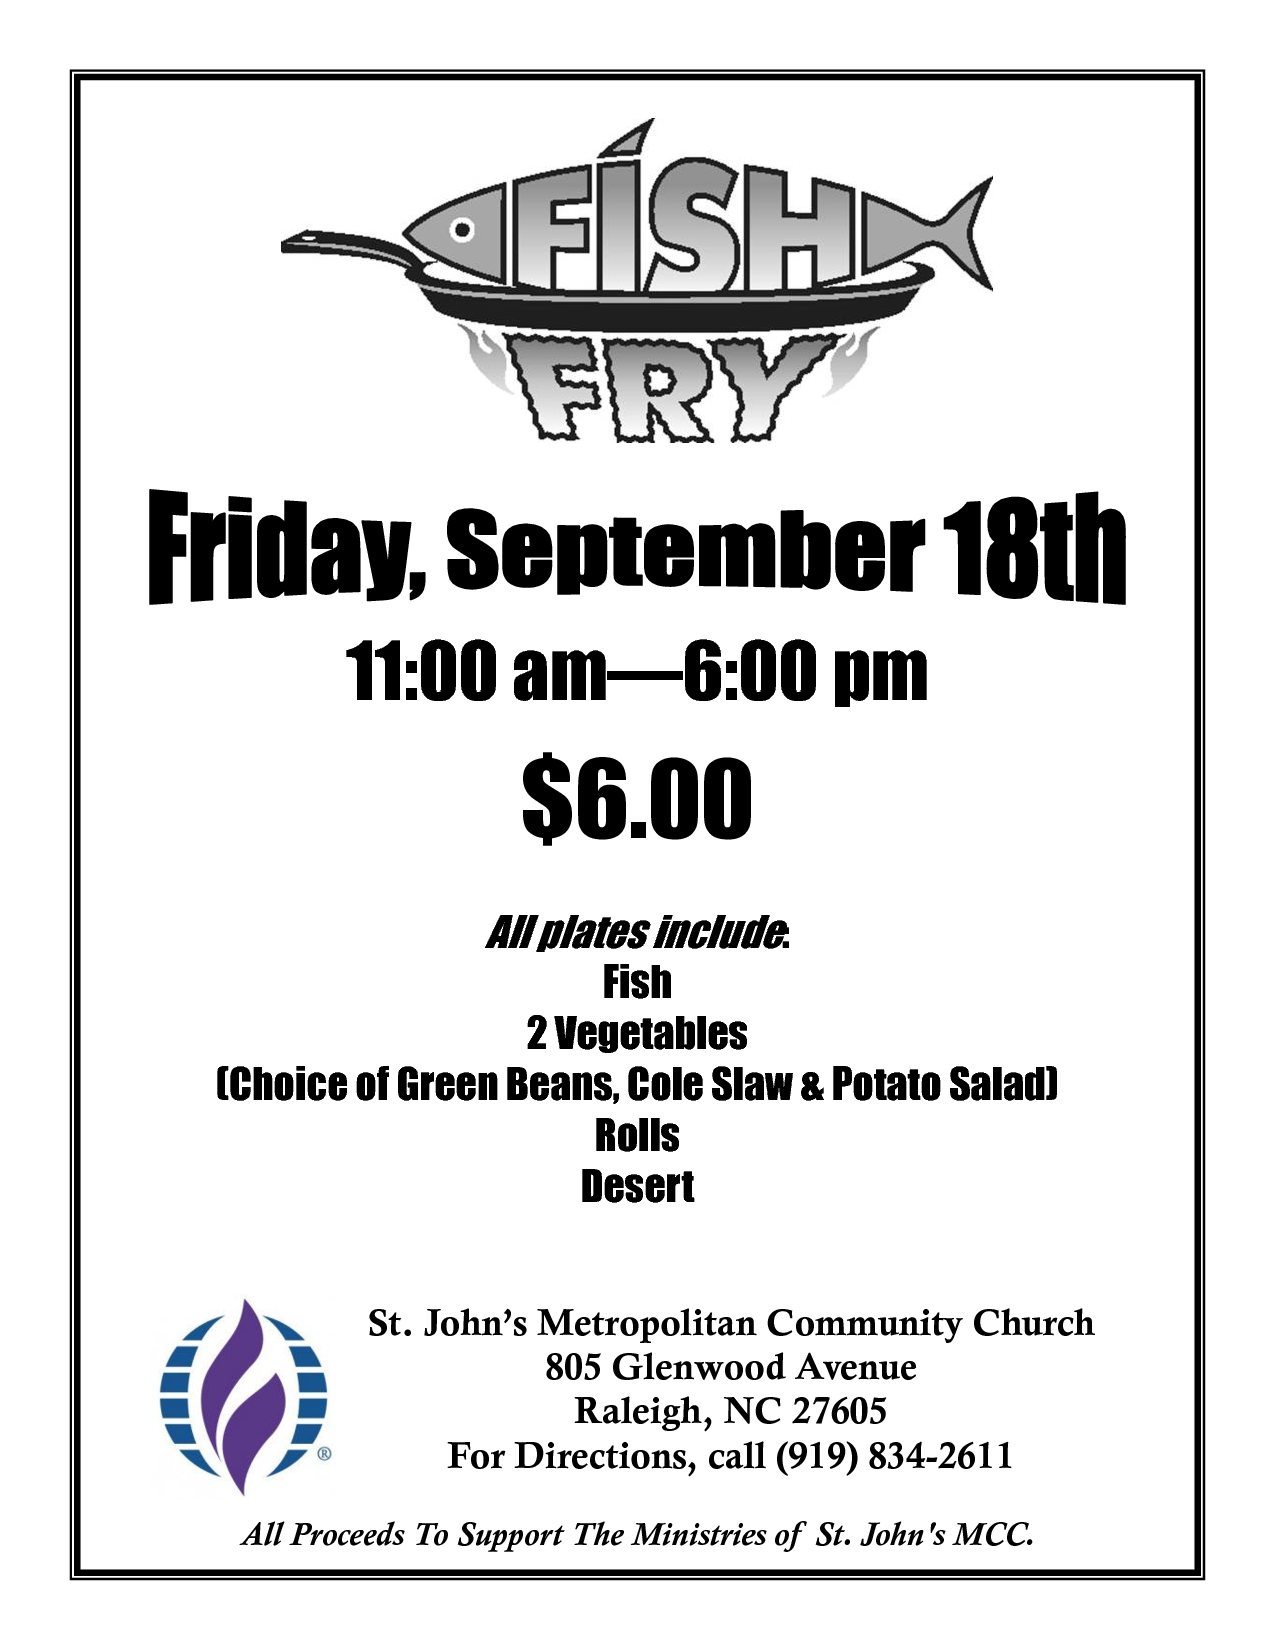 Free Fish Fry Flyer Templates